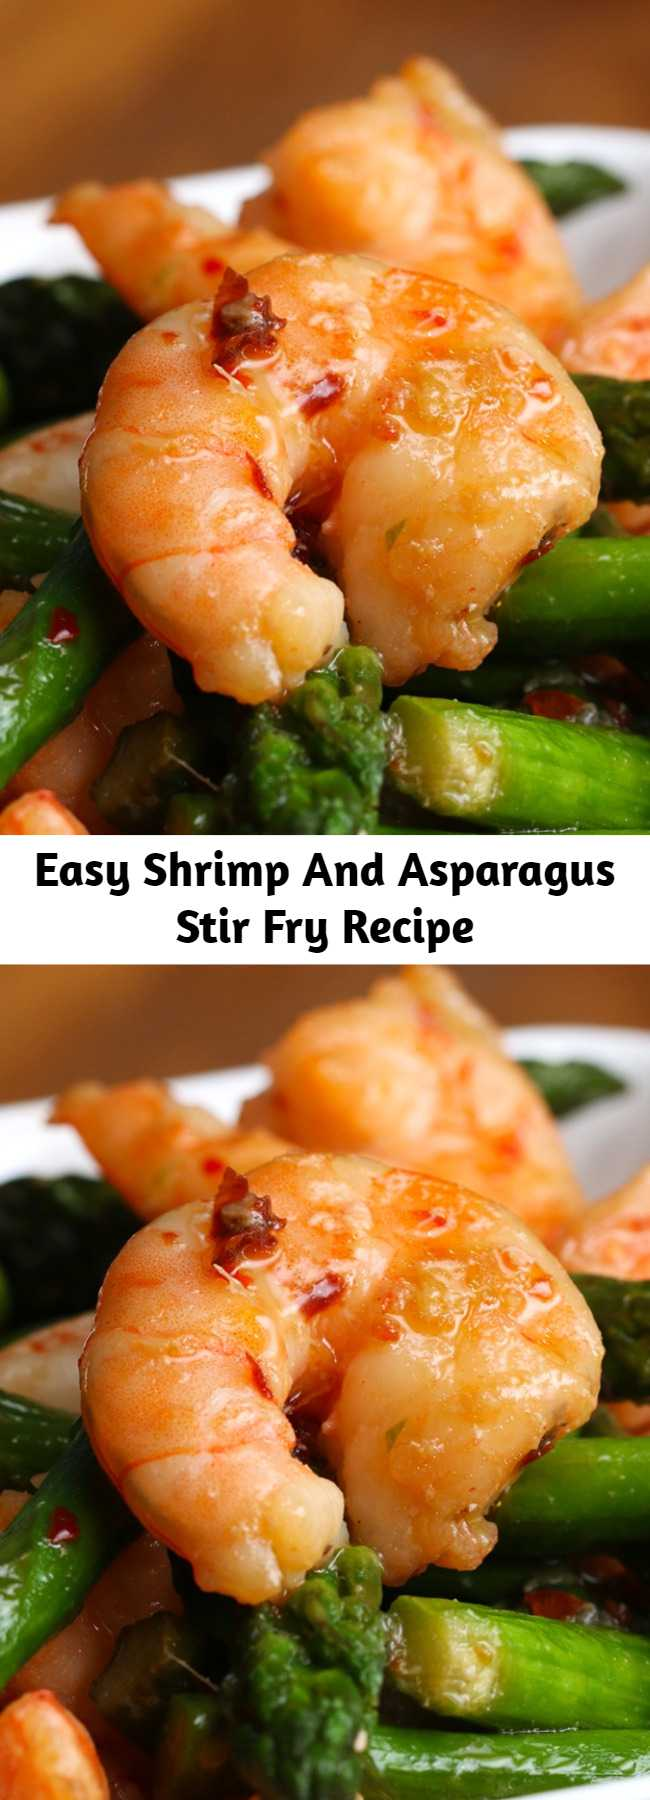 Easy Shrimp And Asparagus Stir Fry Recipe (Under 300 Calories) - SO GOOD! Quick, easy, simple and tasty.